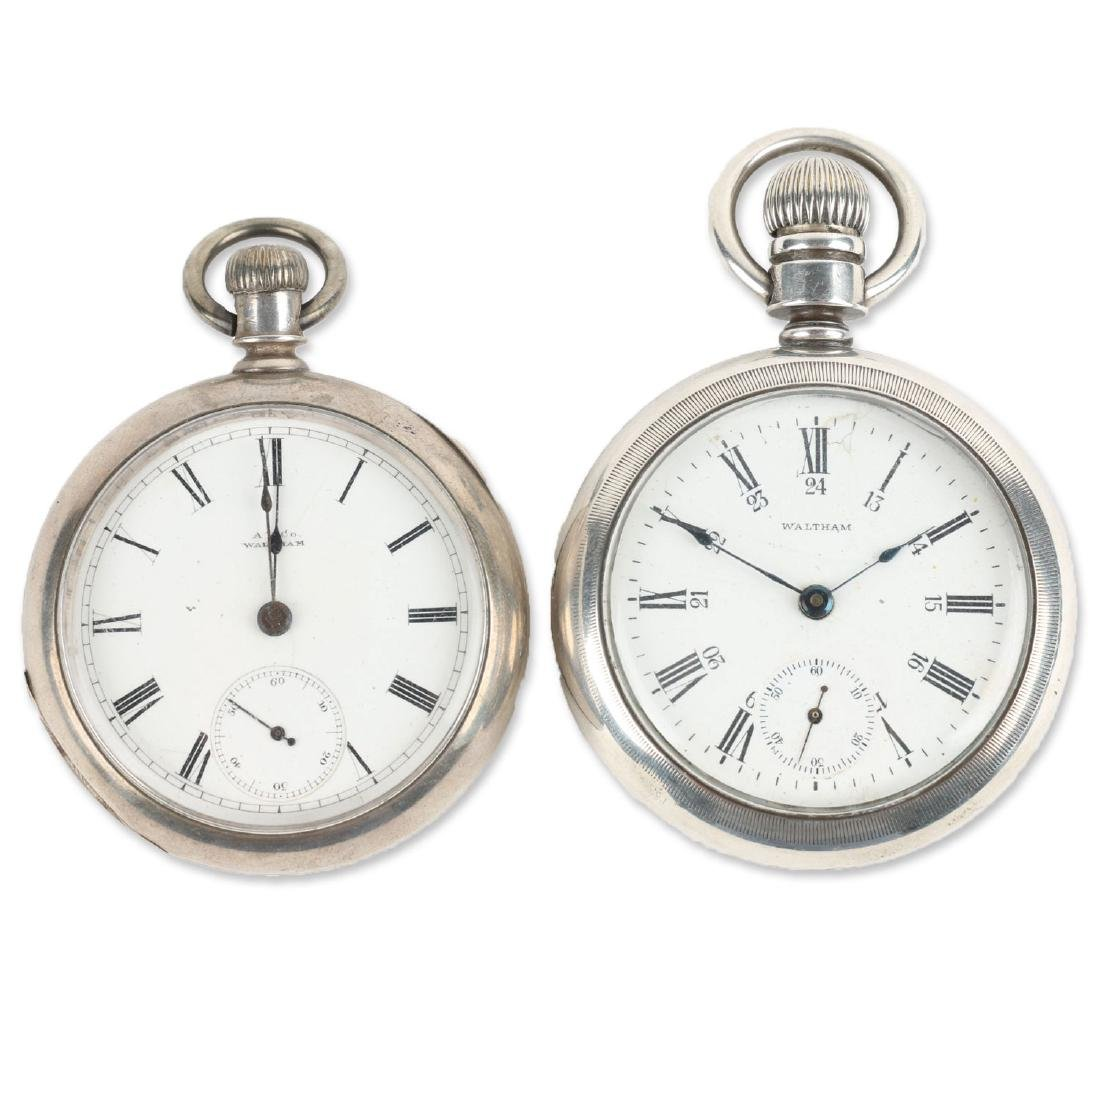 Two (2) 1883 Model Coin Silver Waltham Pocket Watches